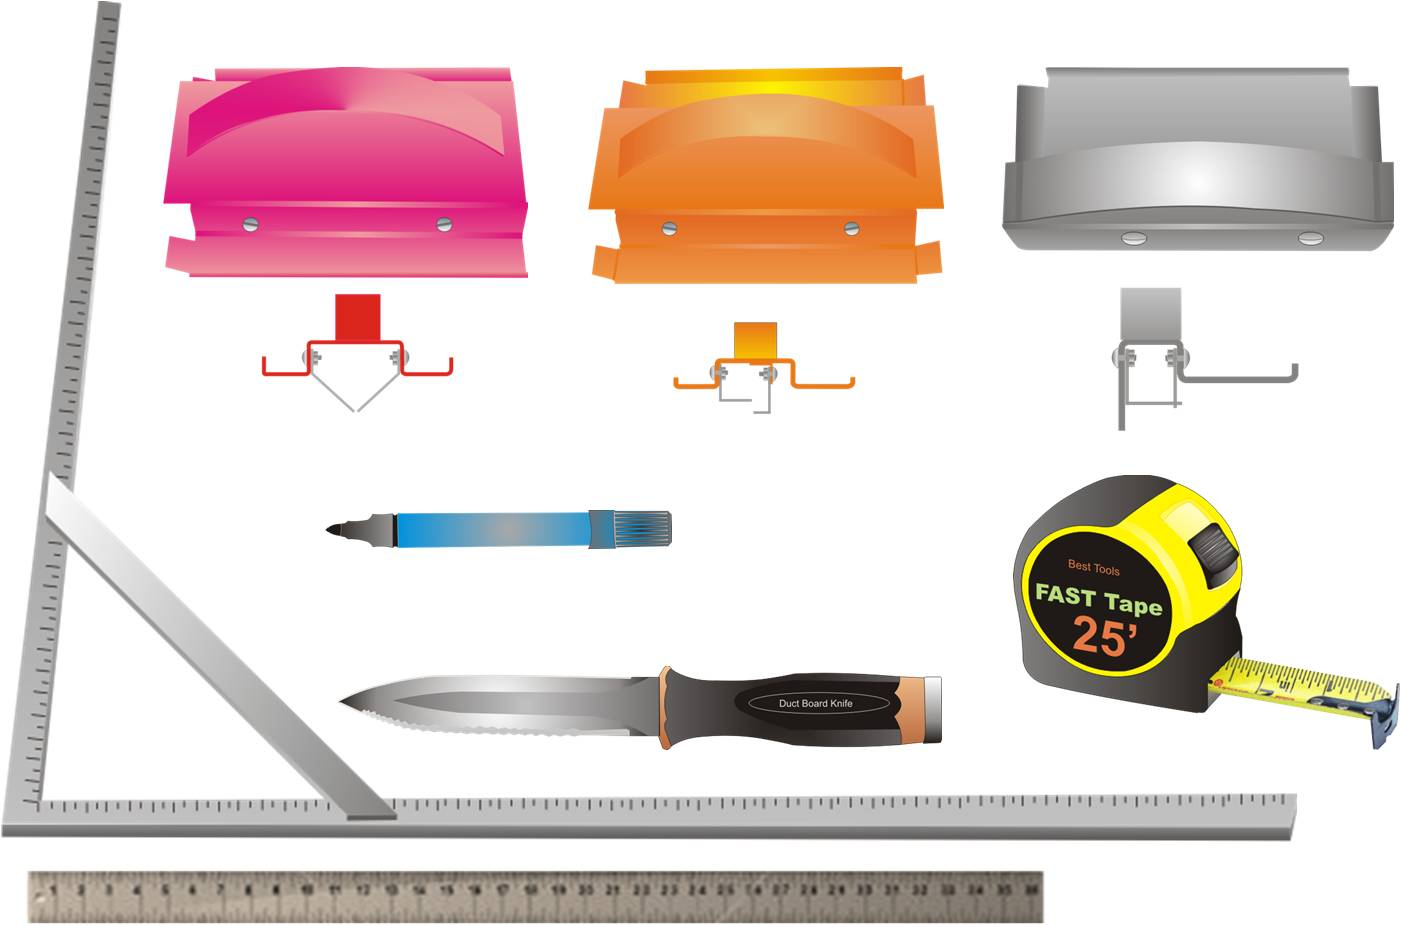 Hand tools for cutting fiber board sheets include a knife, straight edge, and color-coded edge-cutting tools